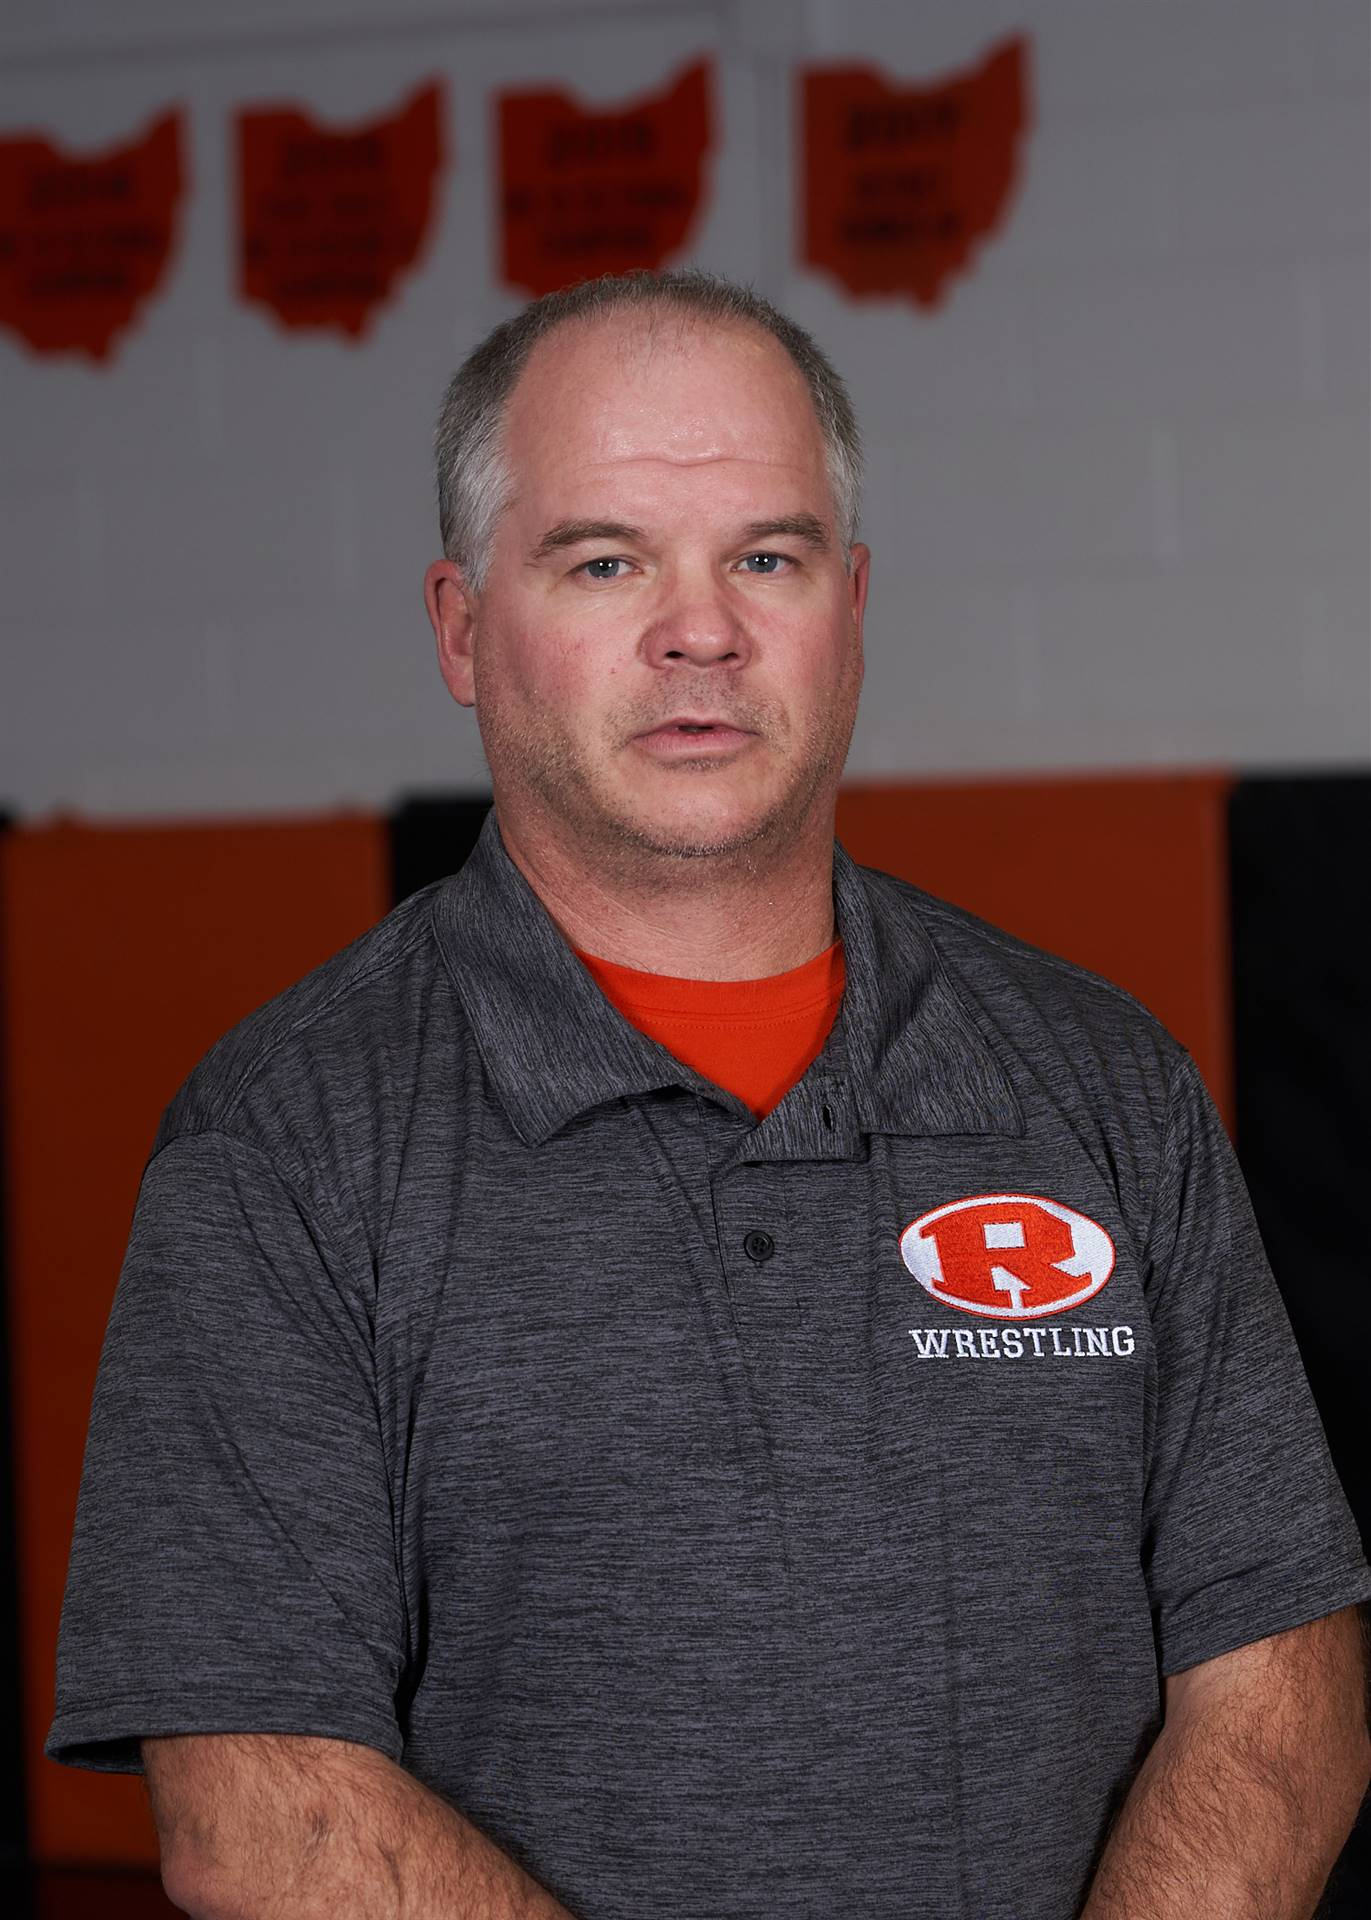 HS Wrestling Coach- Chad Massie